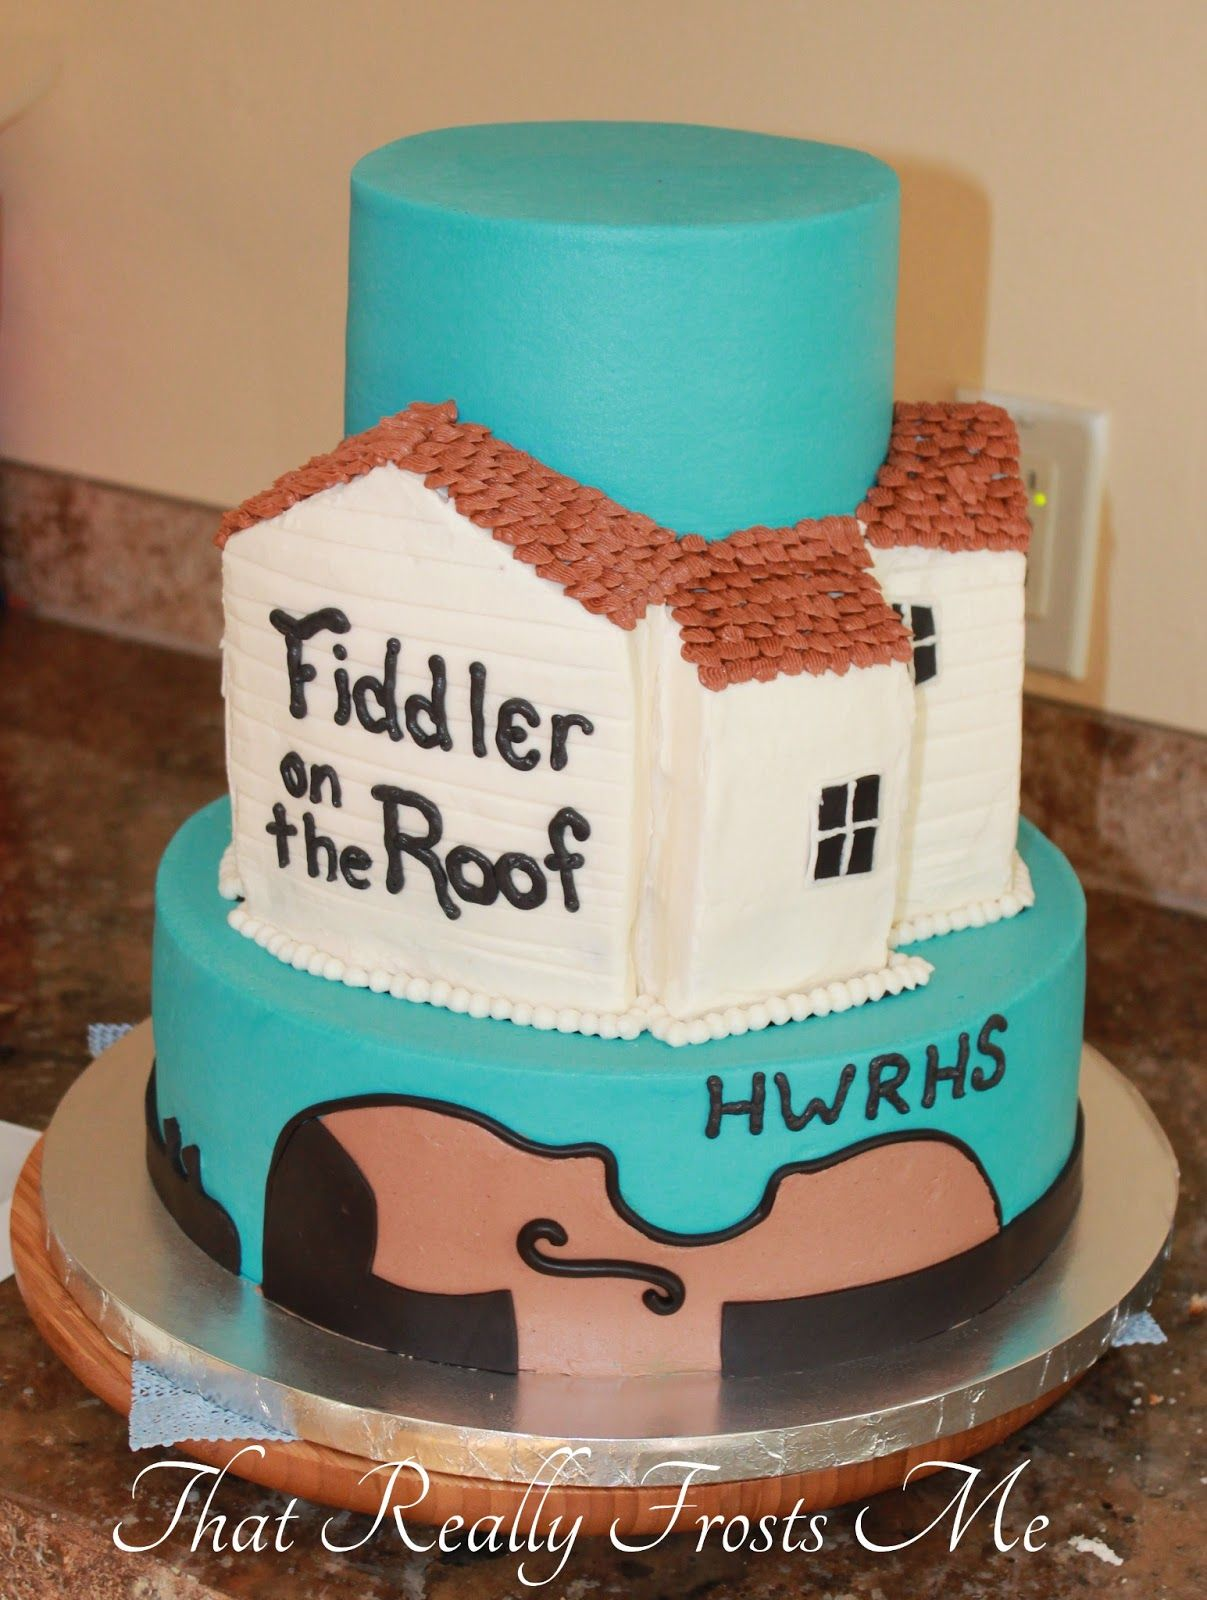 That Really Frosts Me Fiddler on the Roof Cake Tutorial